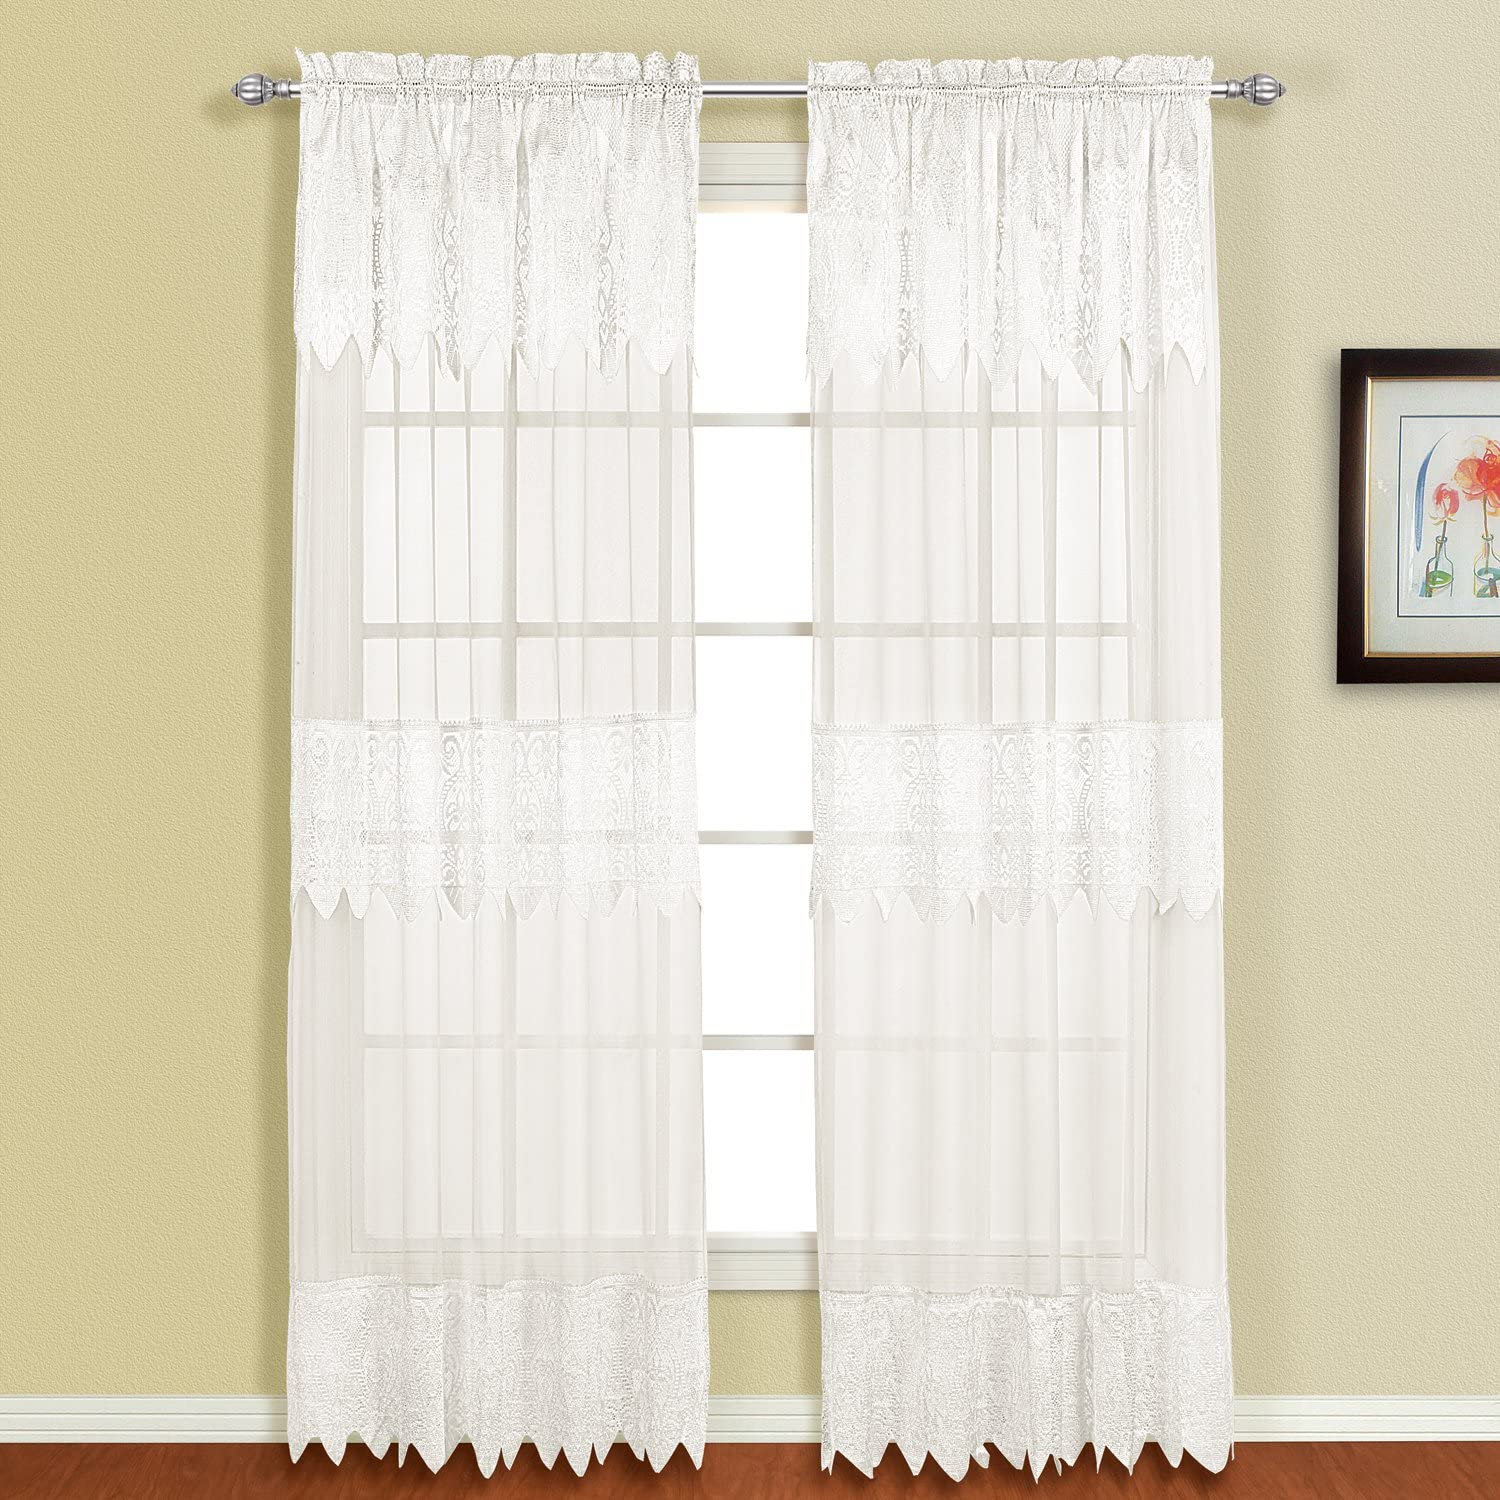 American Curtain and Home Patricia Window Curtain, 52-Inch by 84-Inch, White